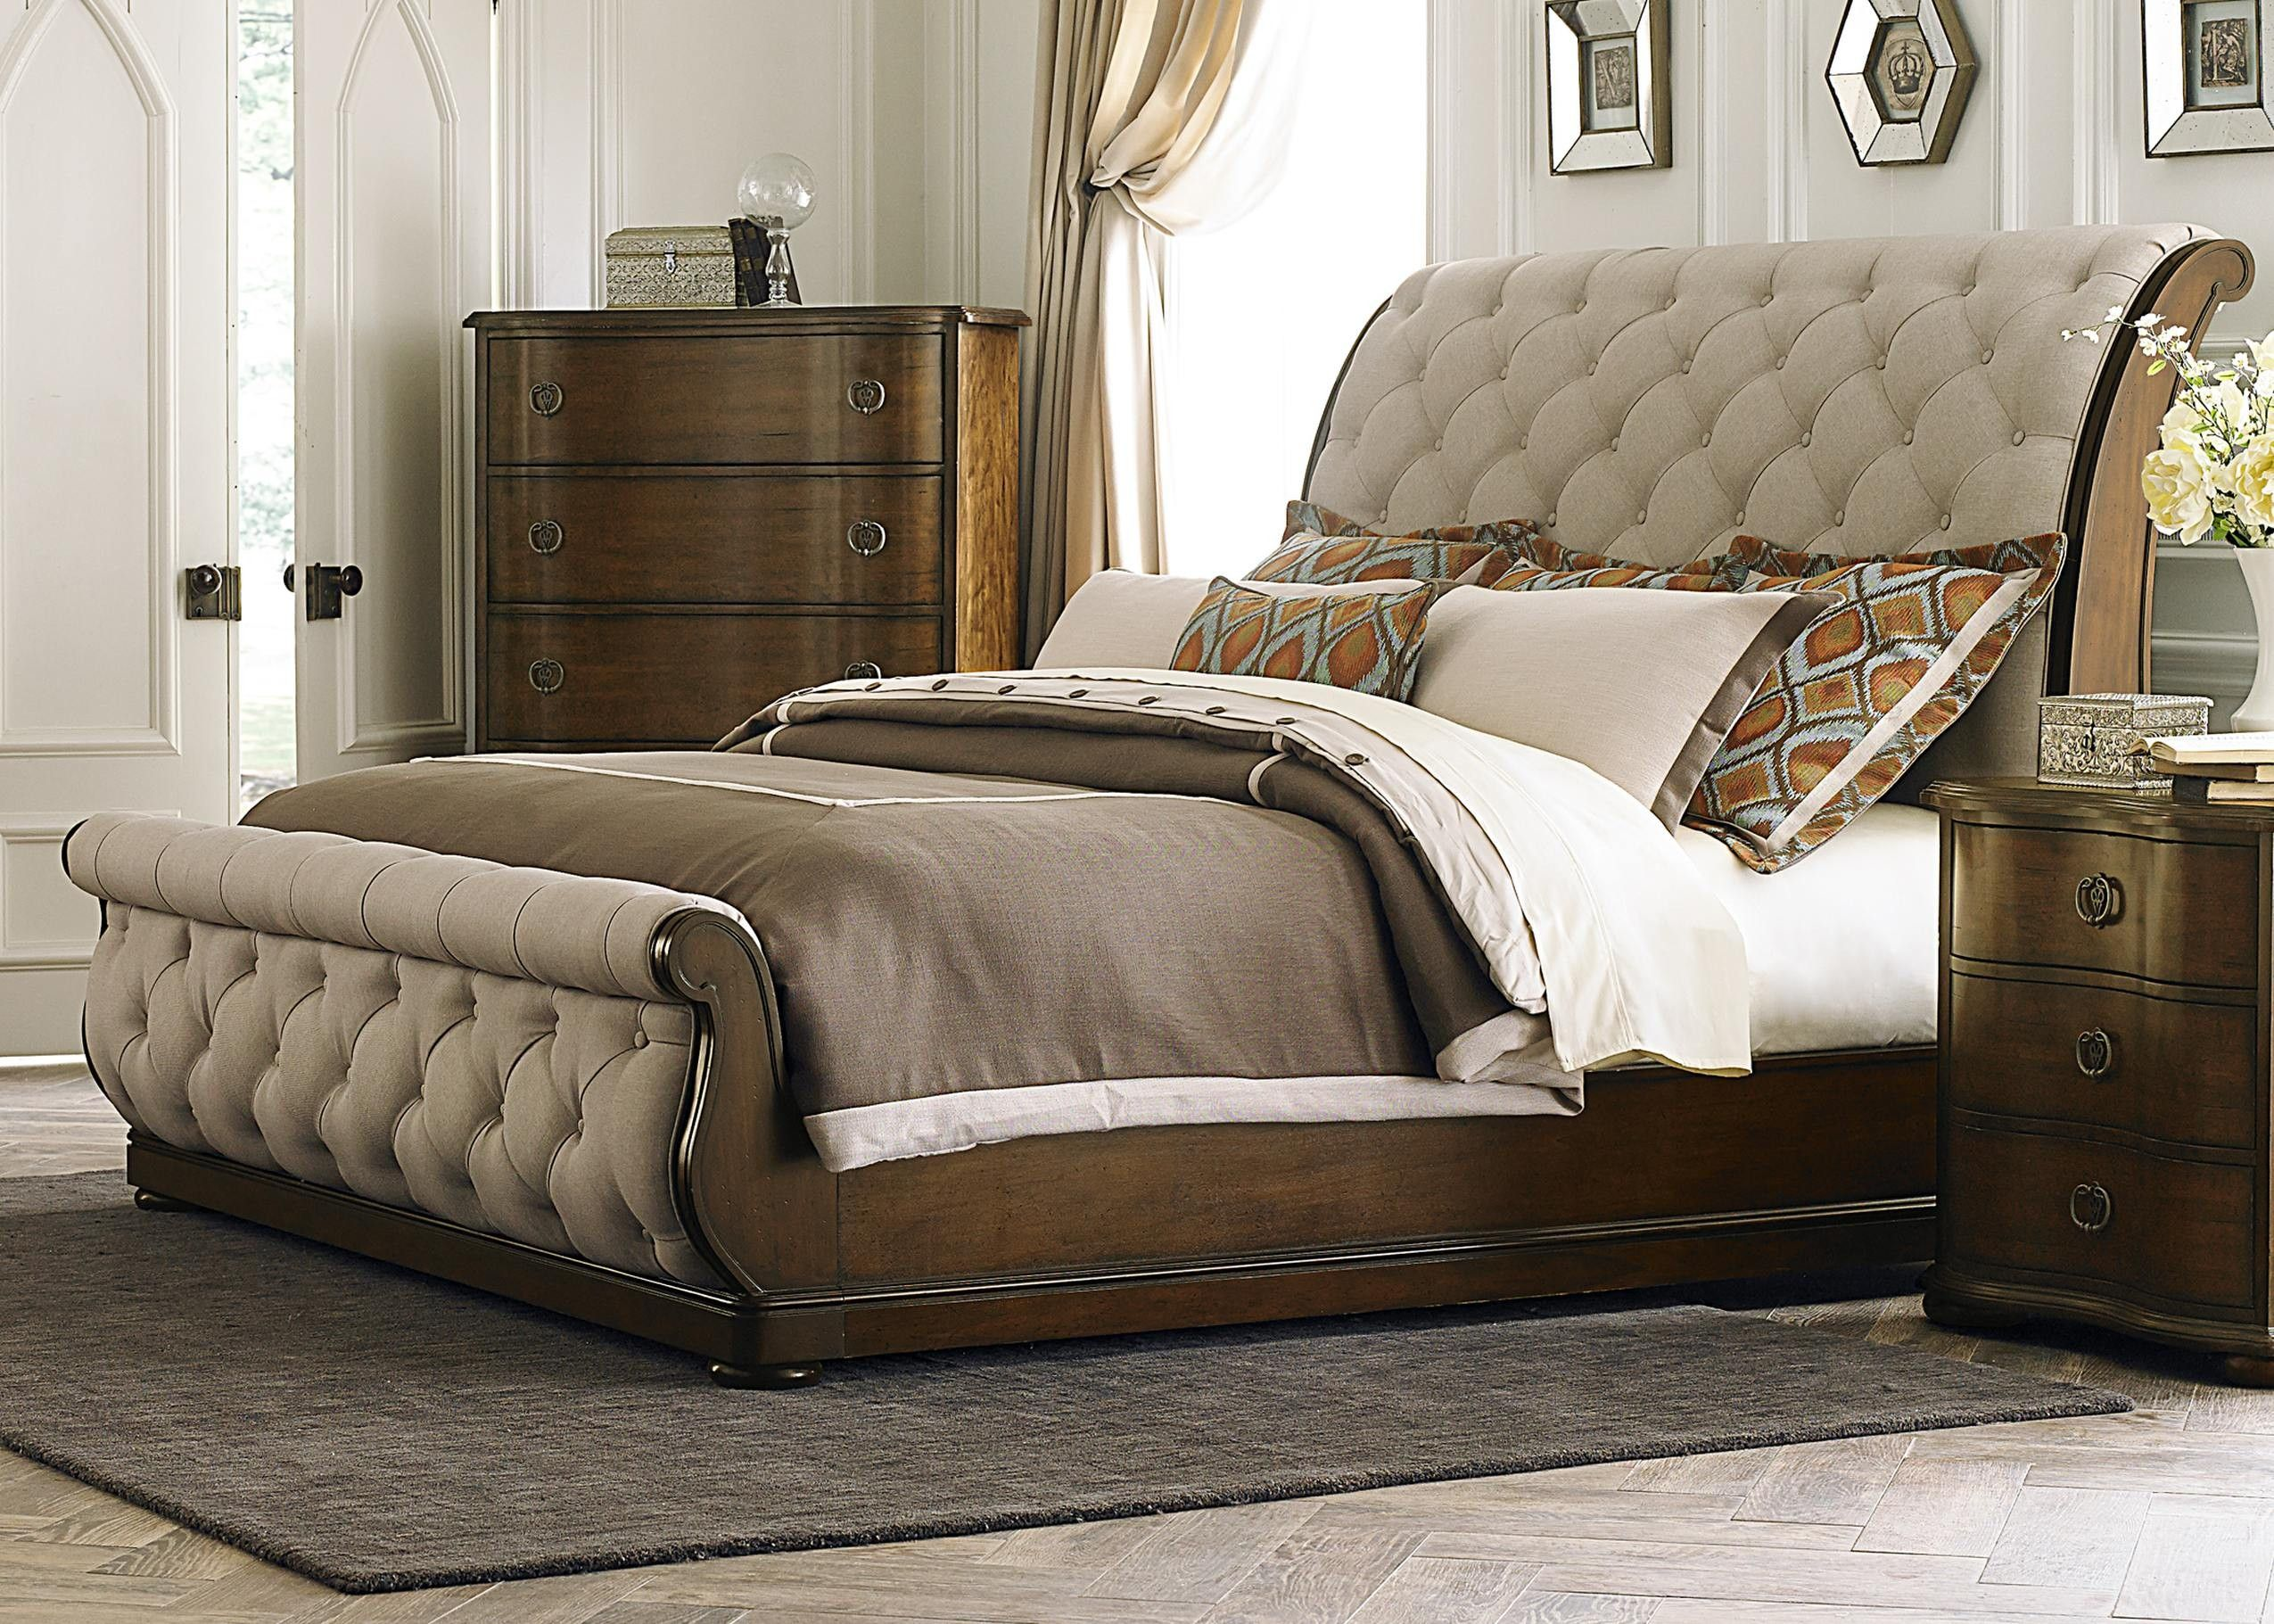 Liberty Furniture Cotswold Tufted Linen Upholstered Sleigh Bed 545 ...